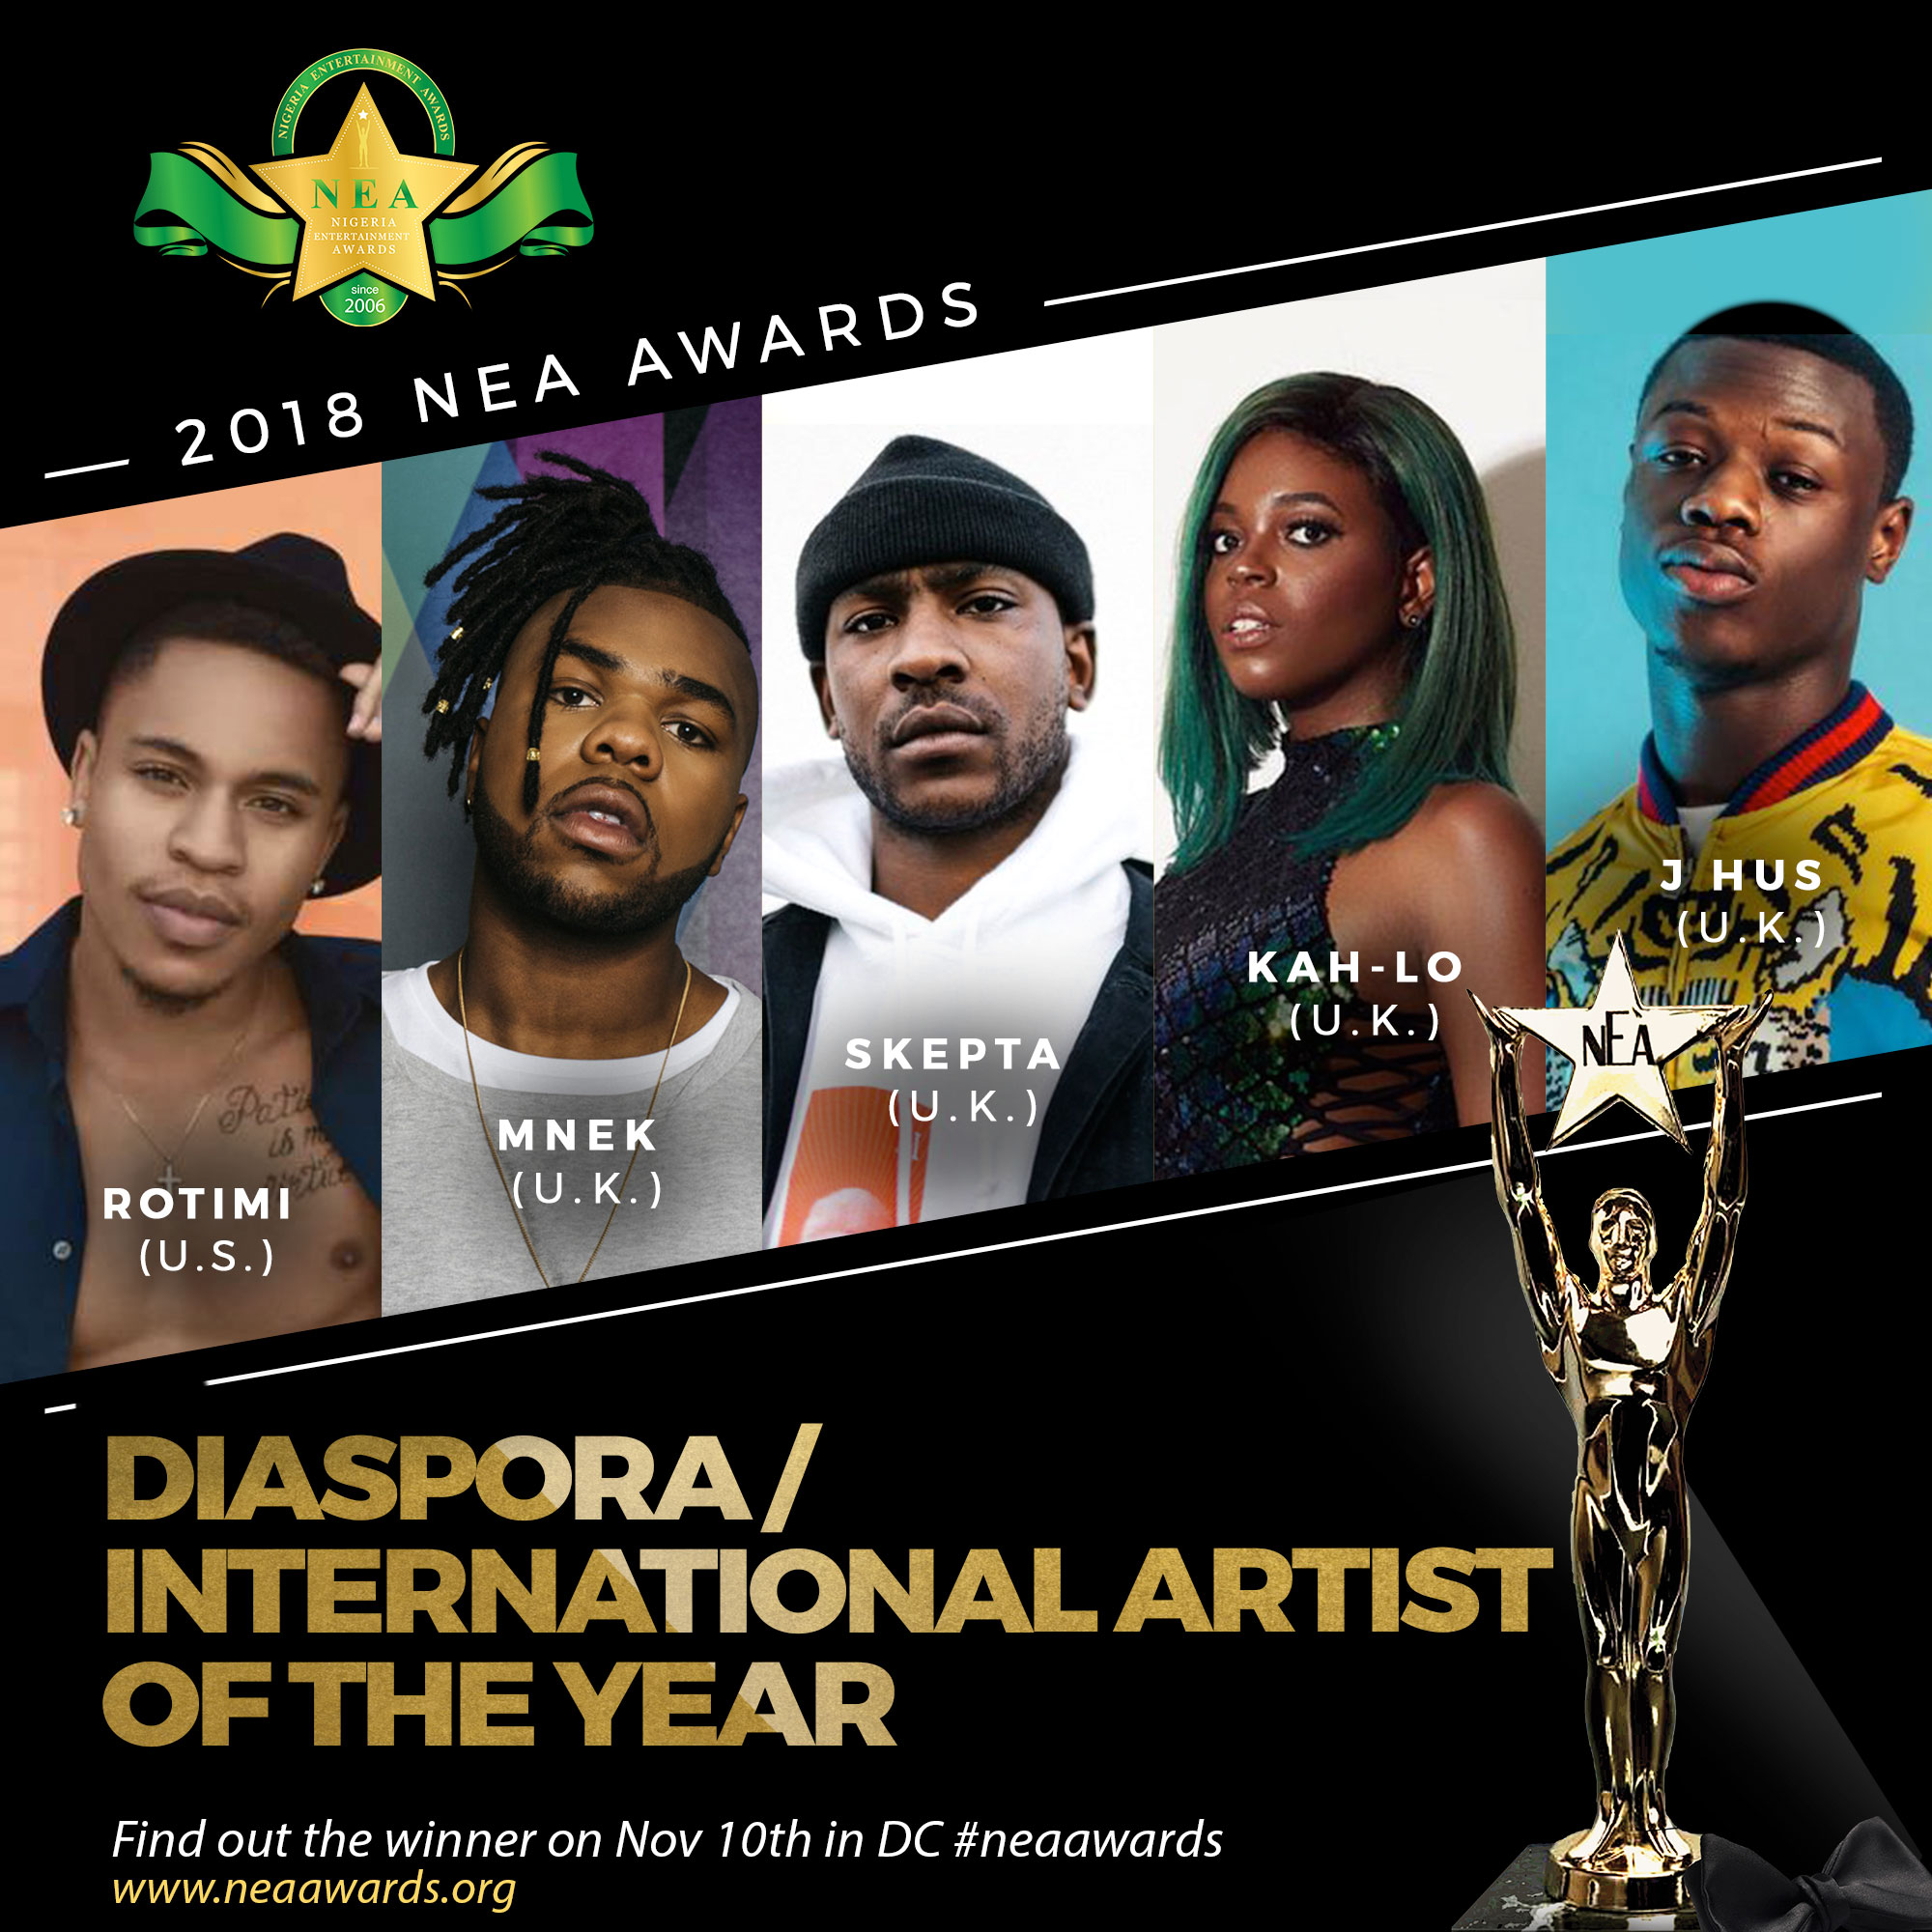 Diaspora-international-Artist-of-the-Yea